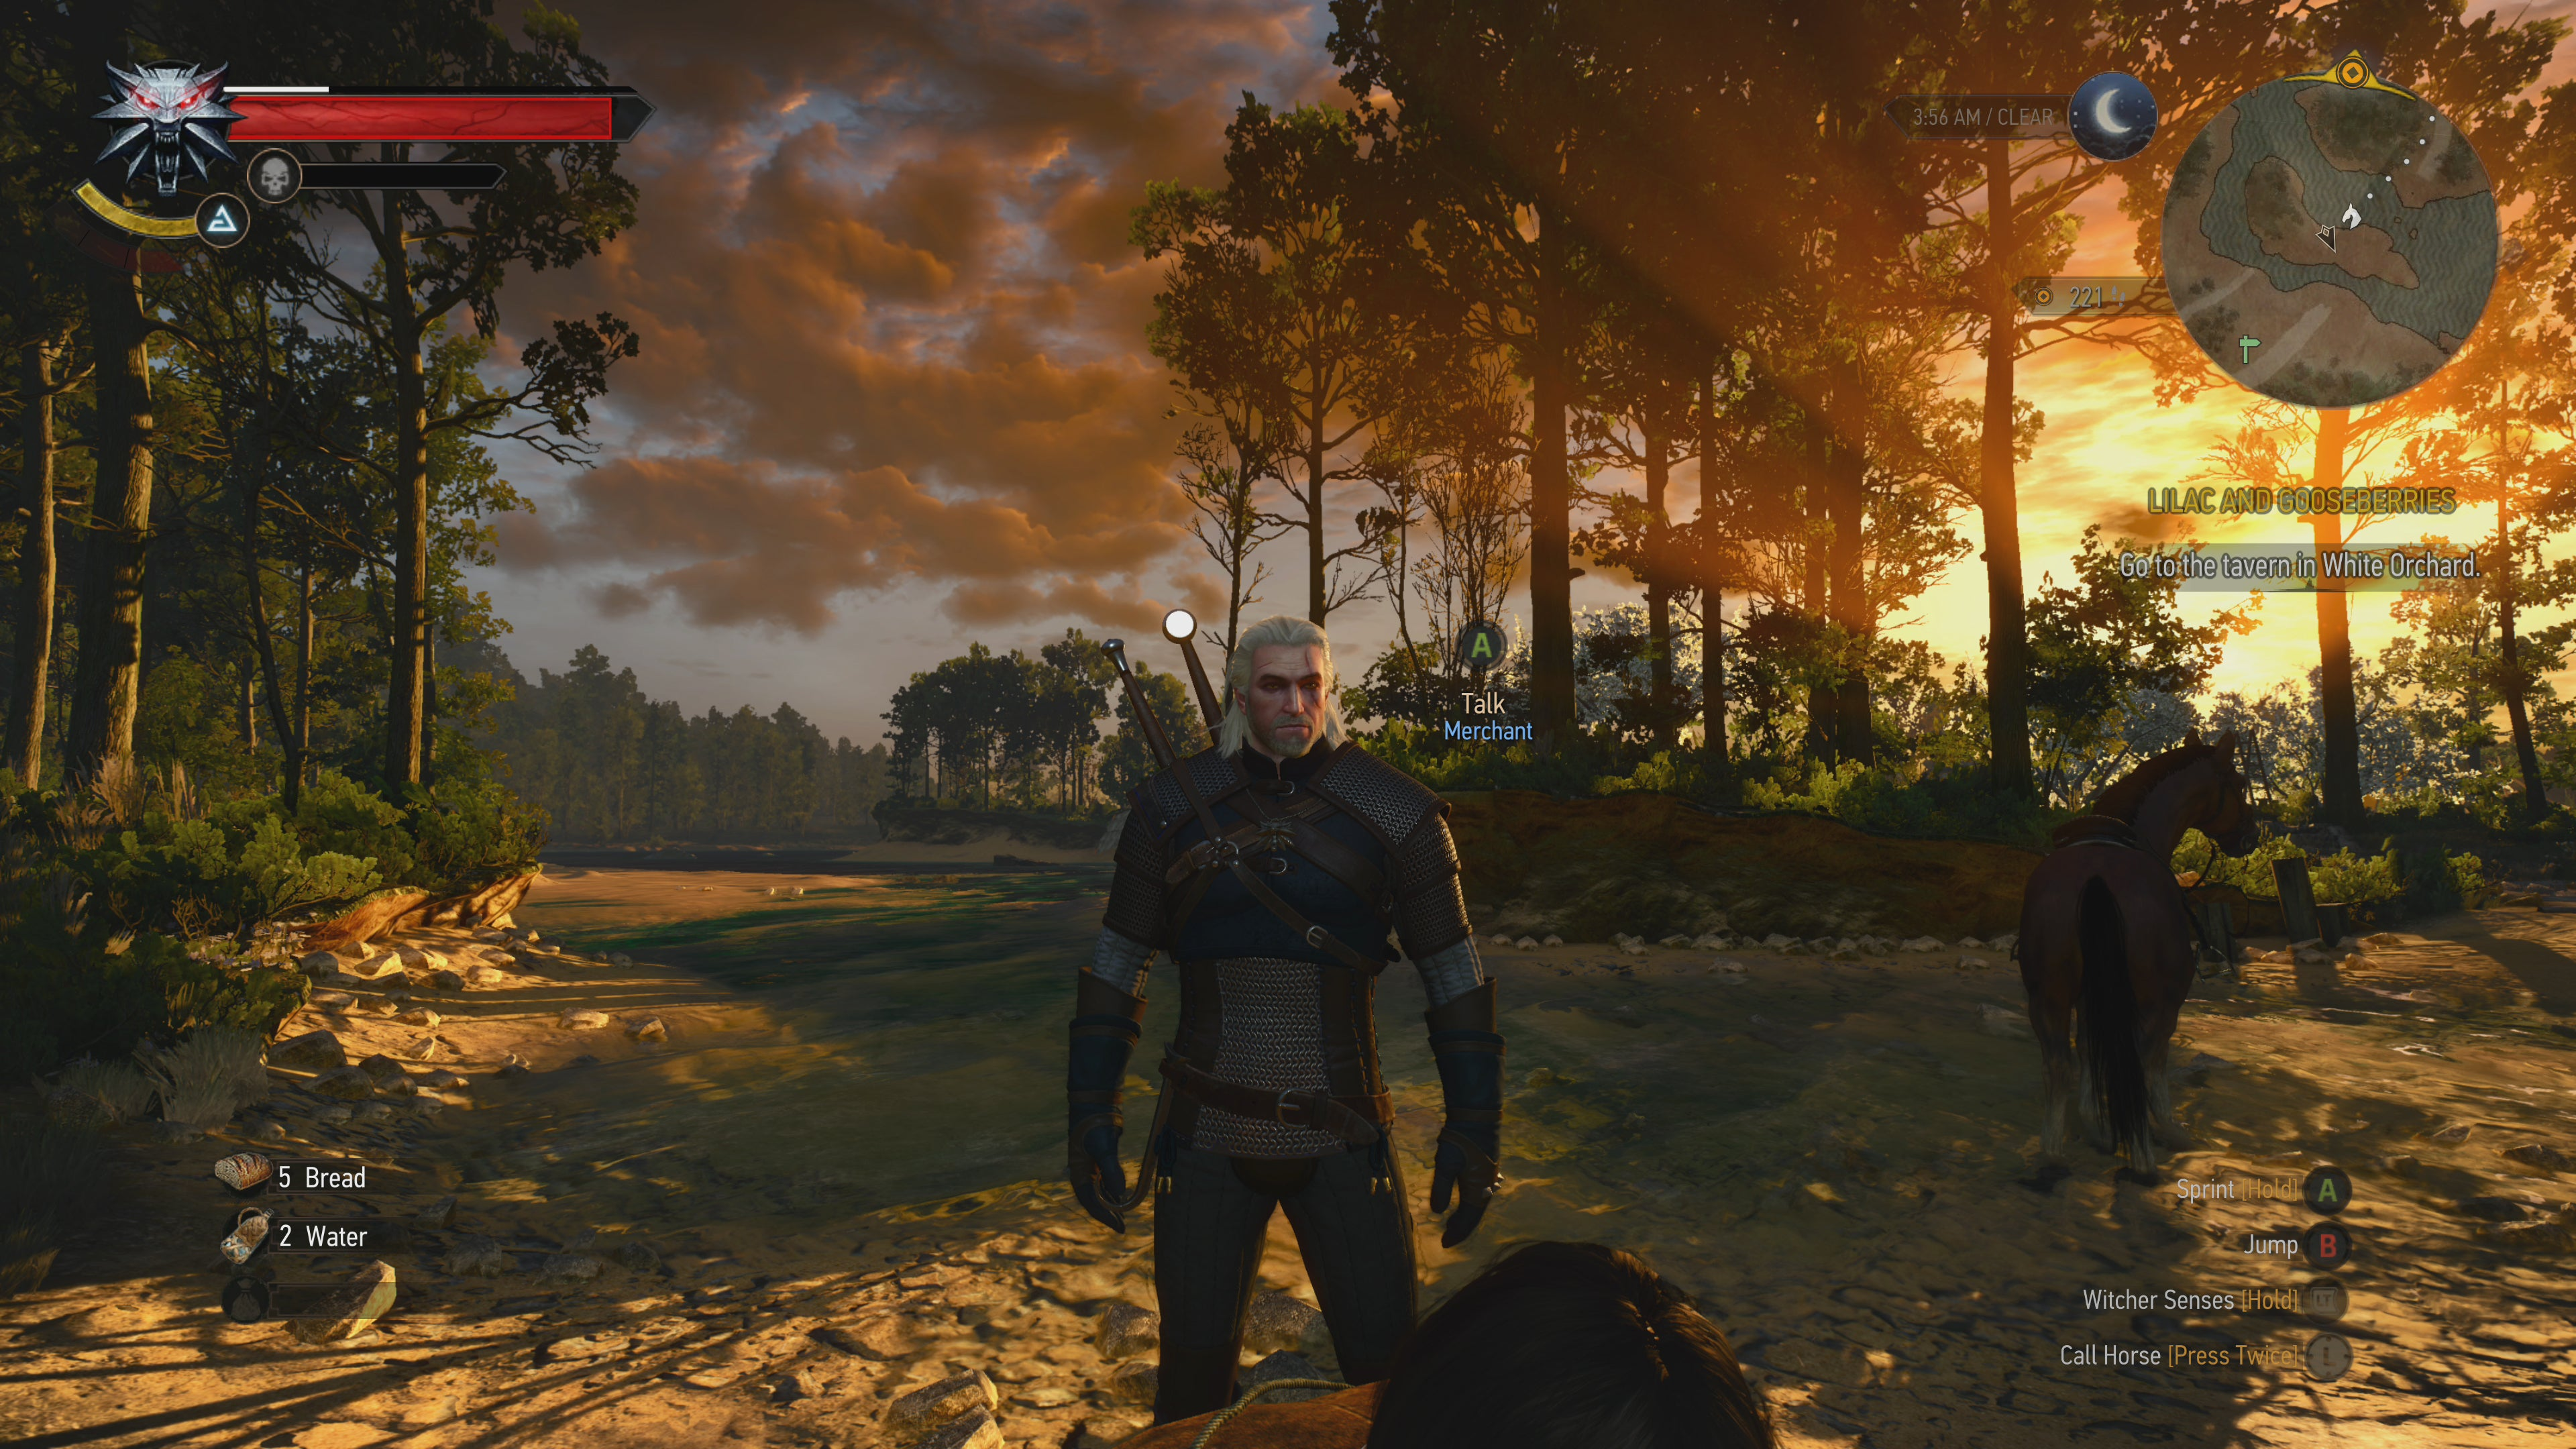 The Witcher 3 Now Officially Runs At 60 Fps On The Xbox